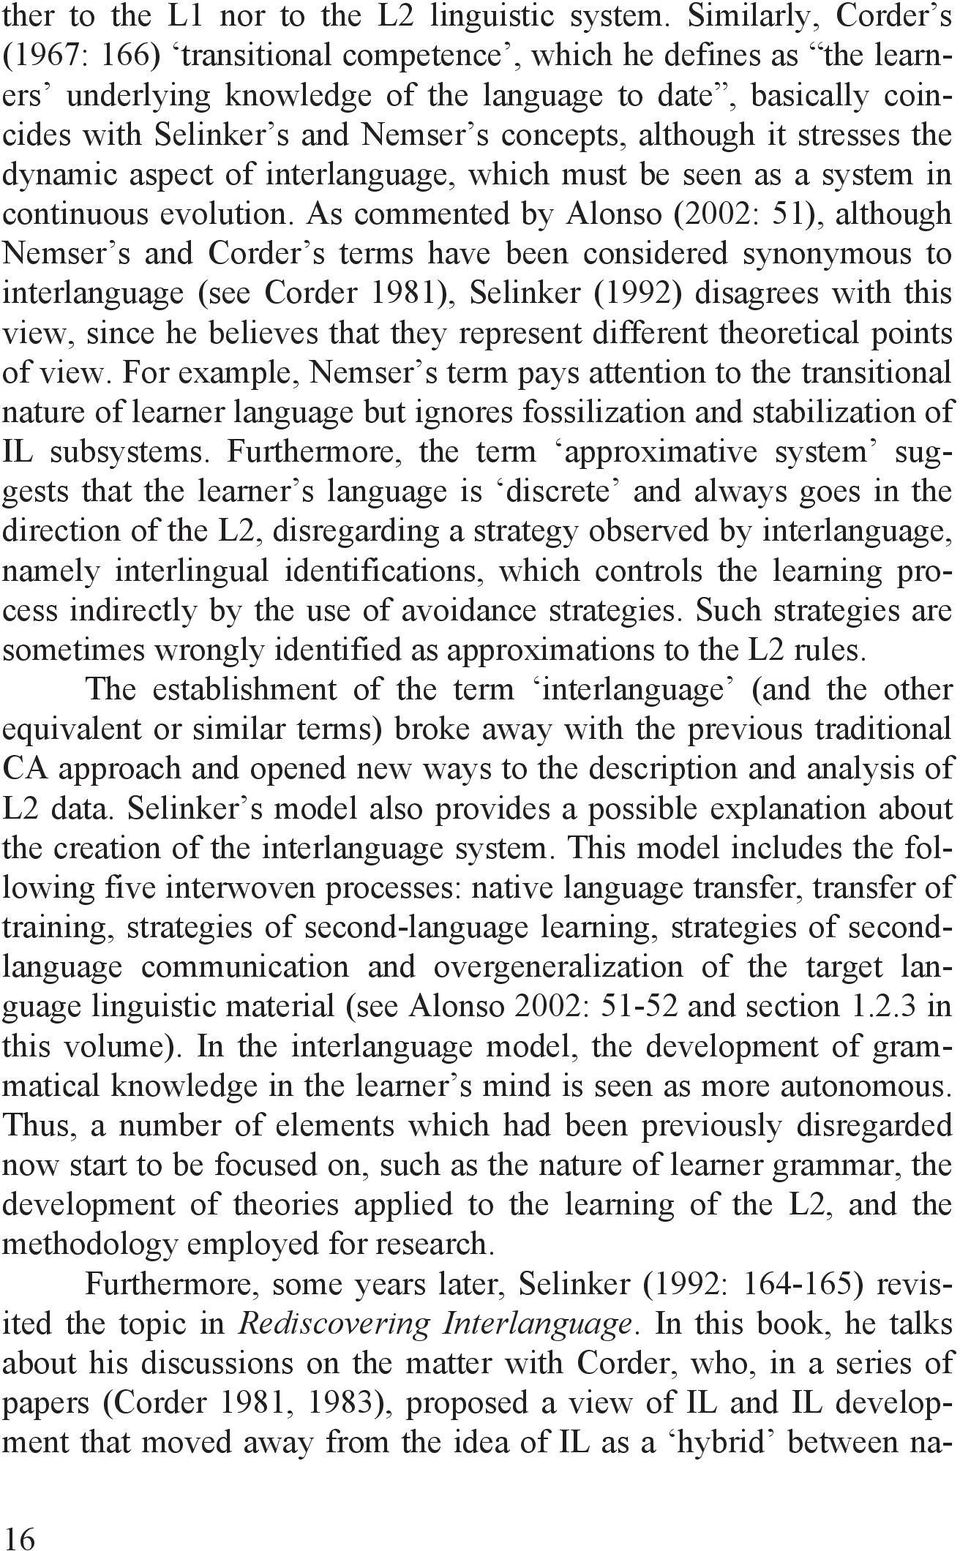 although it stresses the dynamic aspect of interlanguage, which must be seen as a system in continuous evolution.